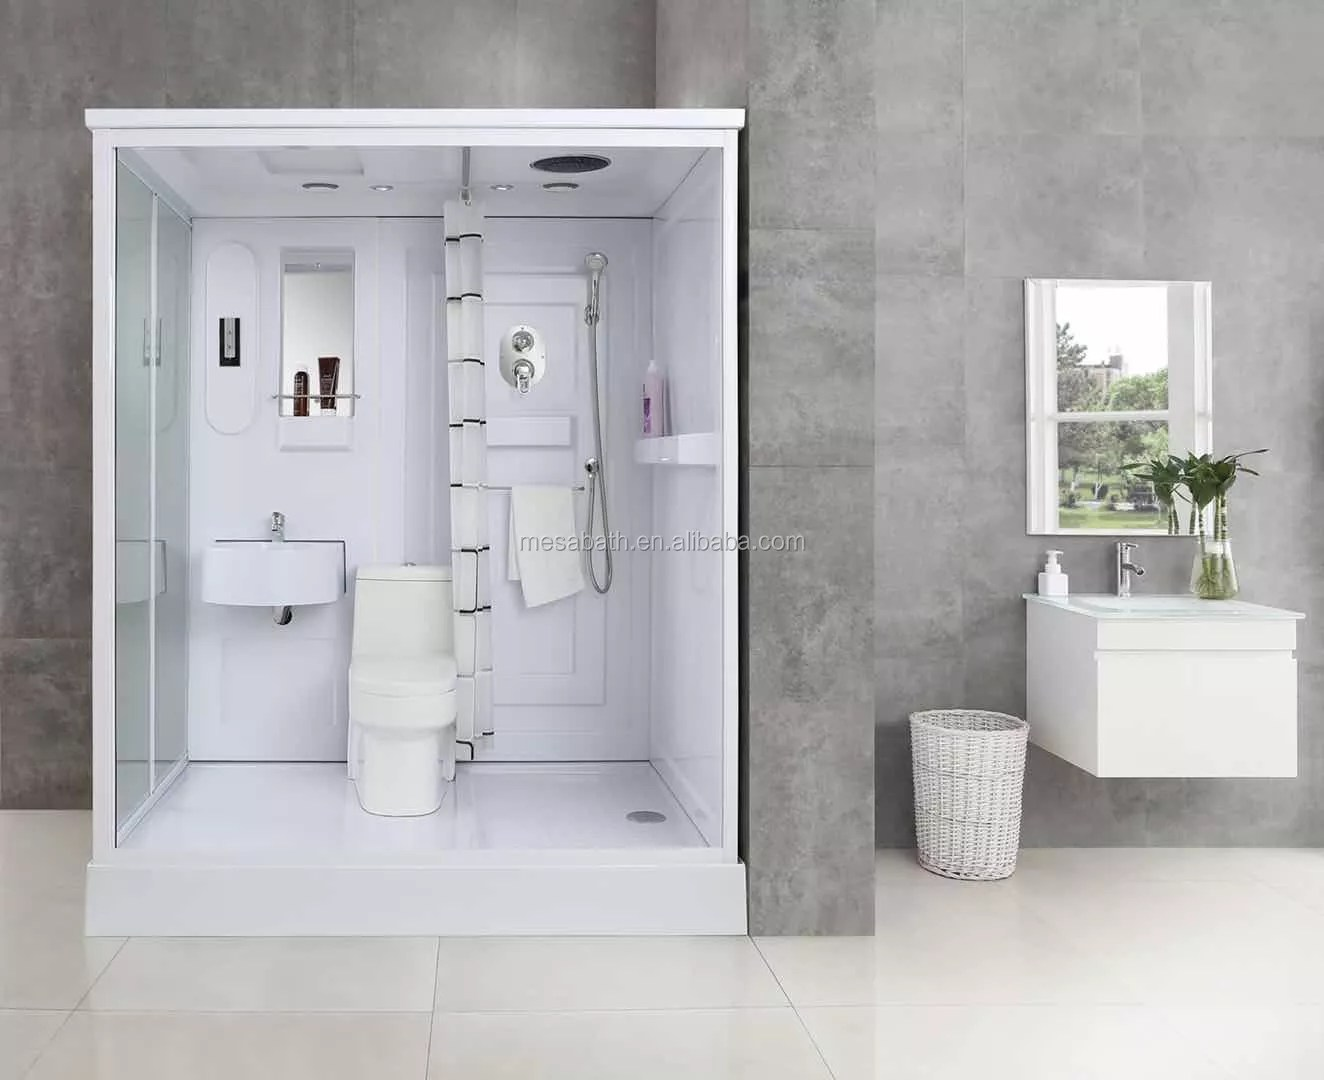 portable shower toilet sink shower head combo abs tempered glass shower cabin buy shower sink combo shower head combo toilet vanity combo product on